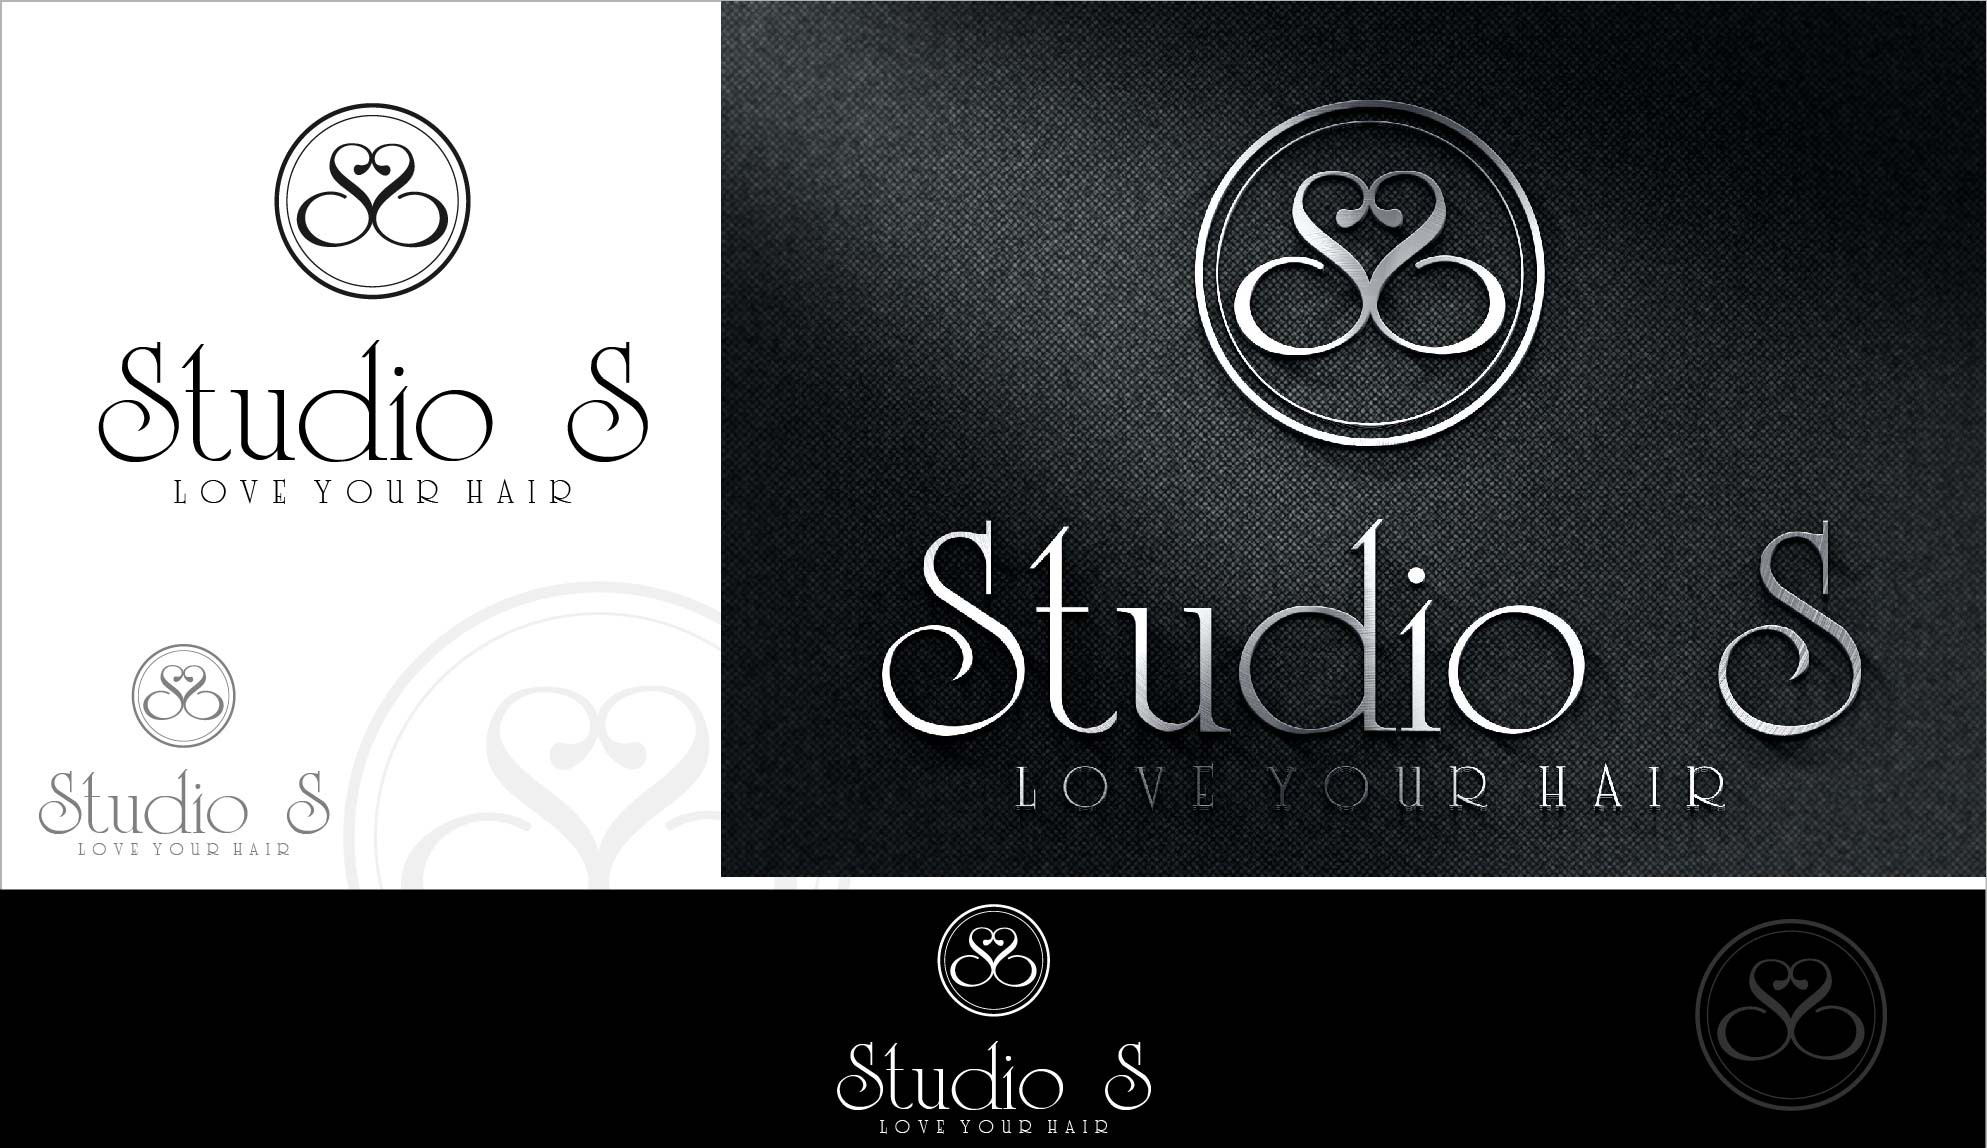 Create a modern yet hand crafted logo for Studio S, a high end hair salon